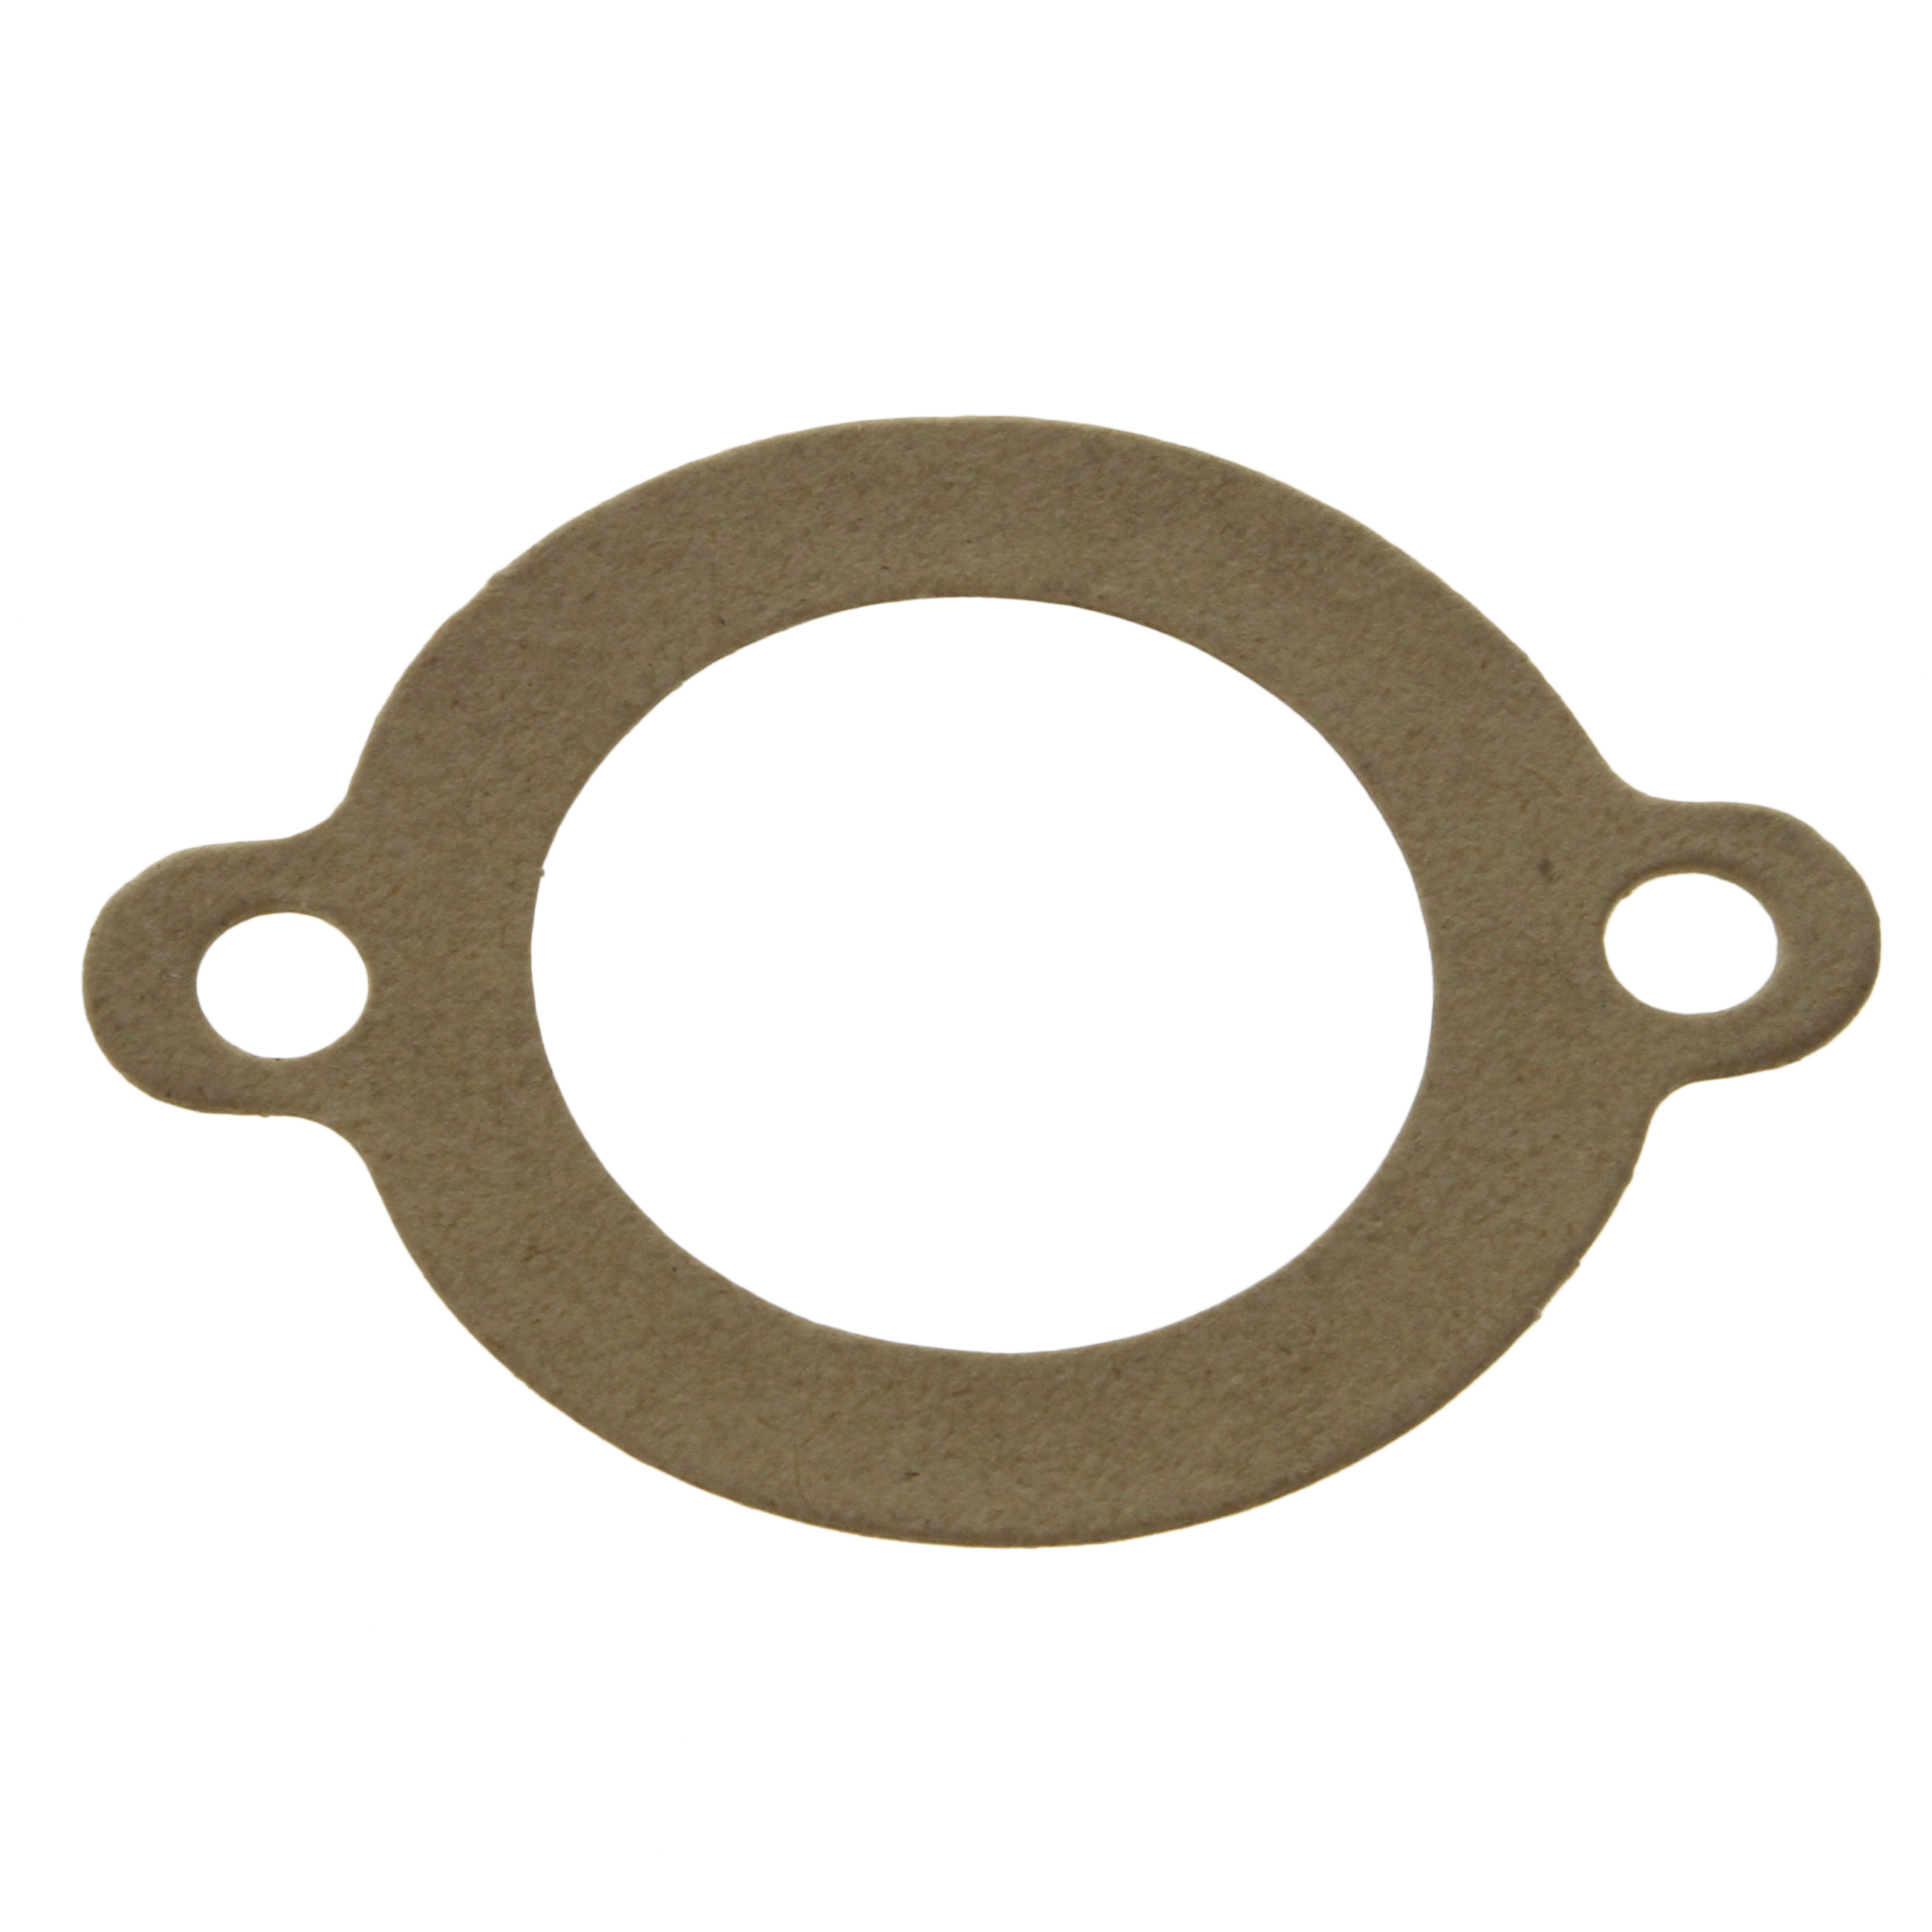 Heavy Equipment, Parts & Attachments Thermostat Ford 2000 2600 2610 3000 3600 3610 4000 4100 4110 4600 4610 5000 5600 Soft And Light